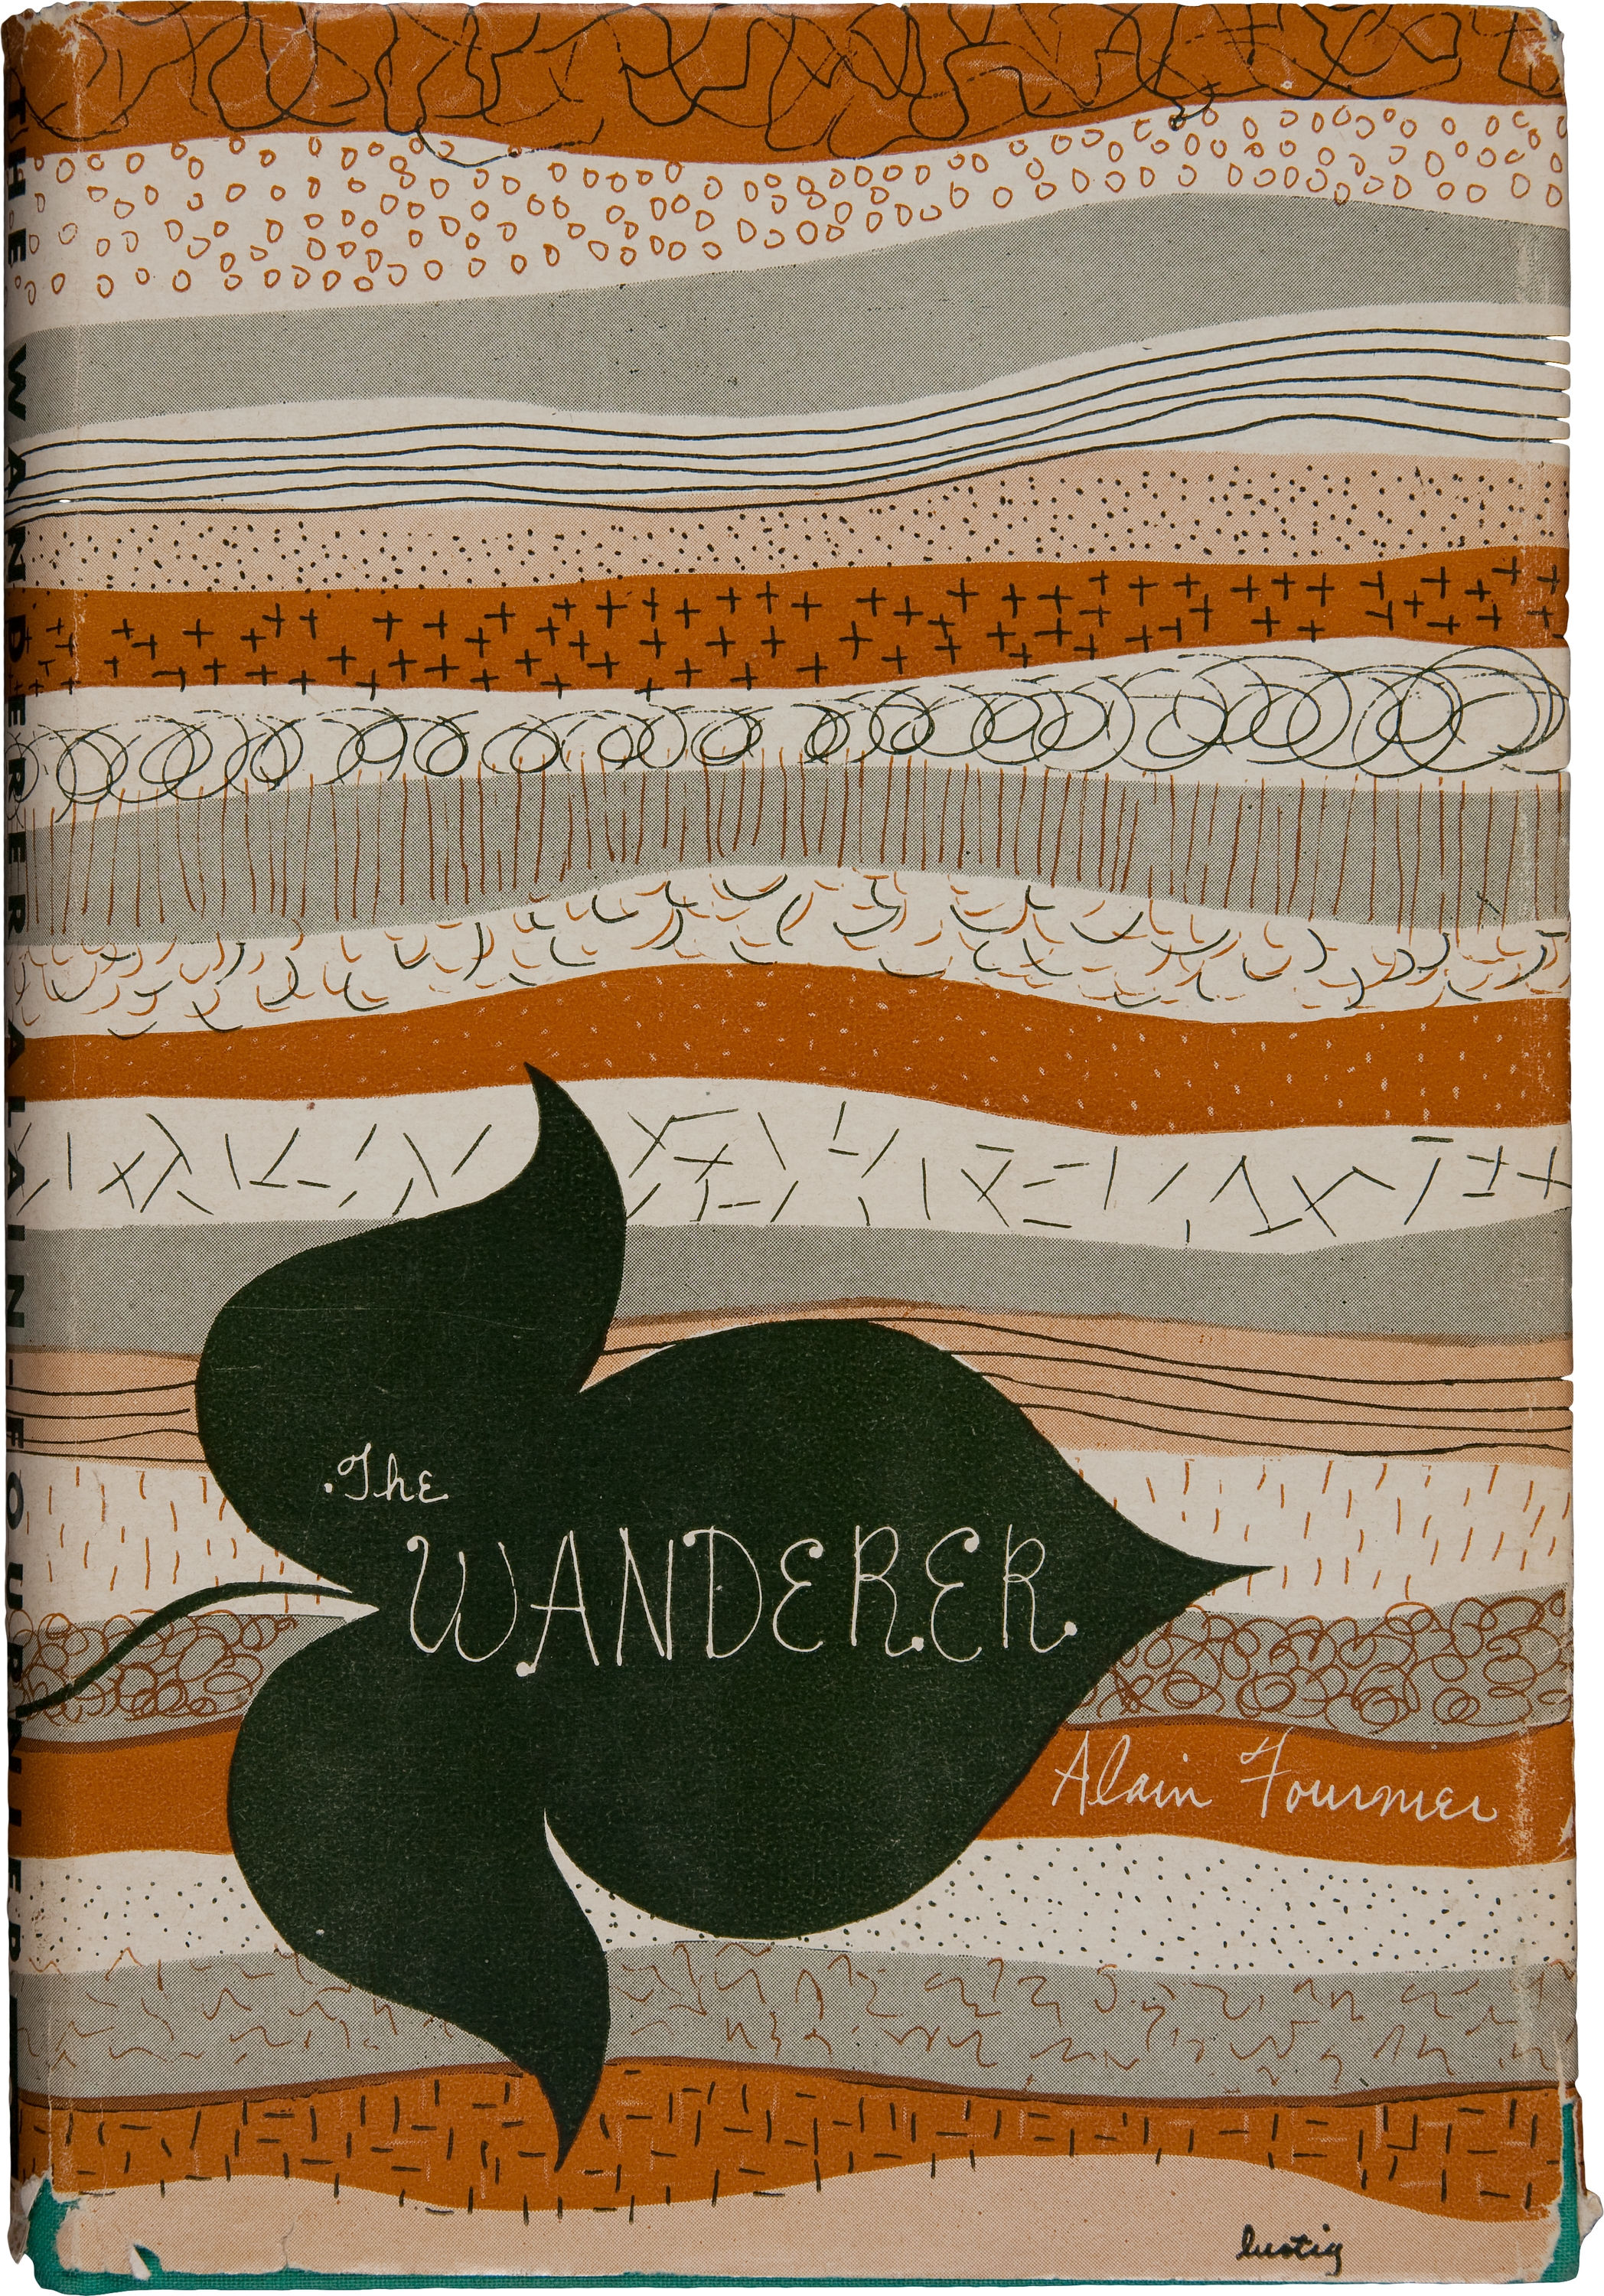 Alain-Fournier. The Wanderer (Le Grand Meaulnes). [New York: New Directions Books, 1946].